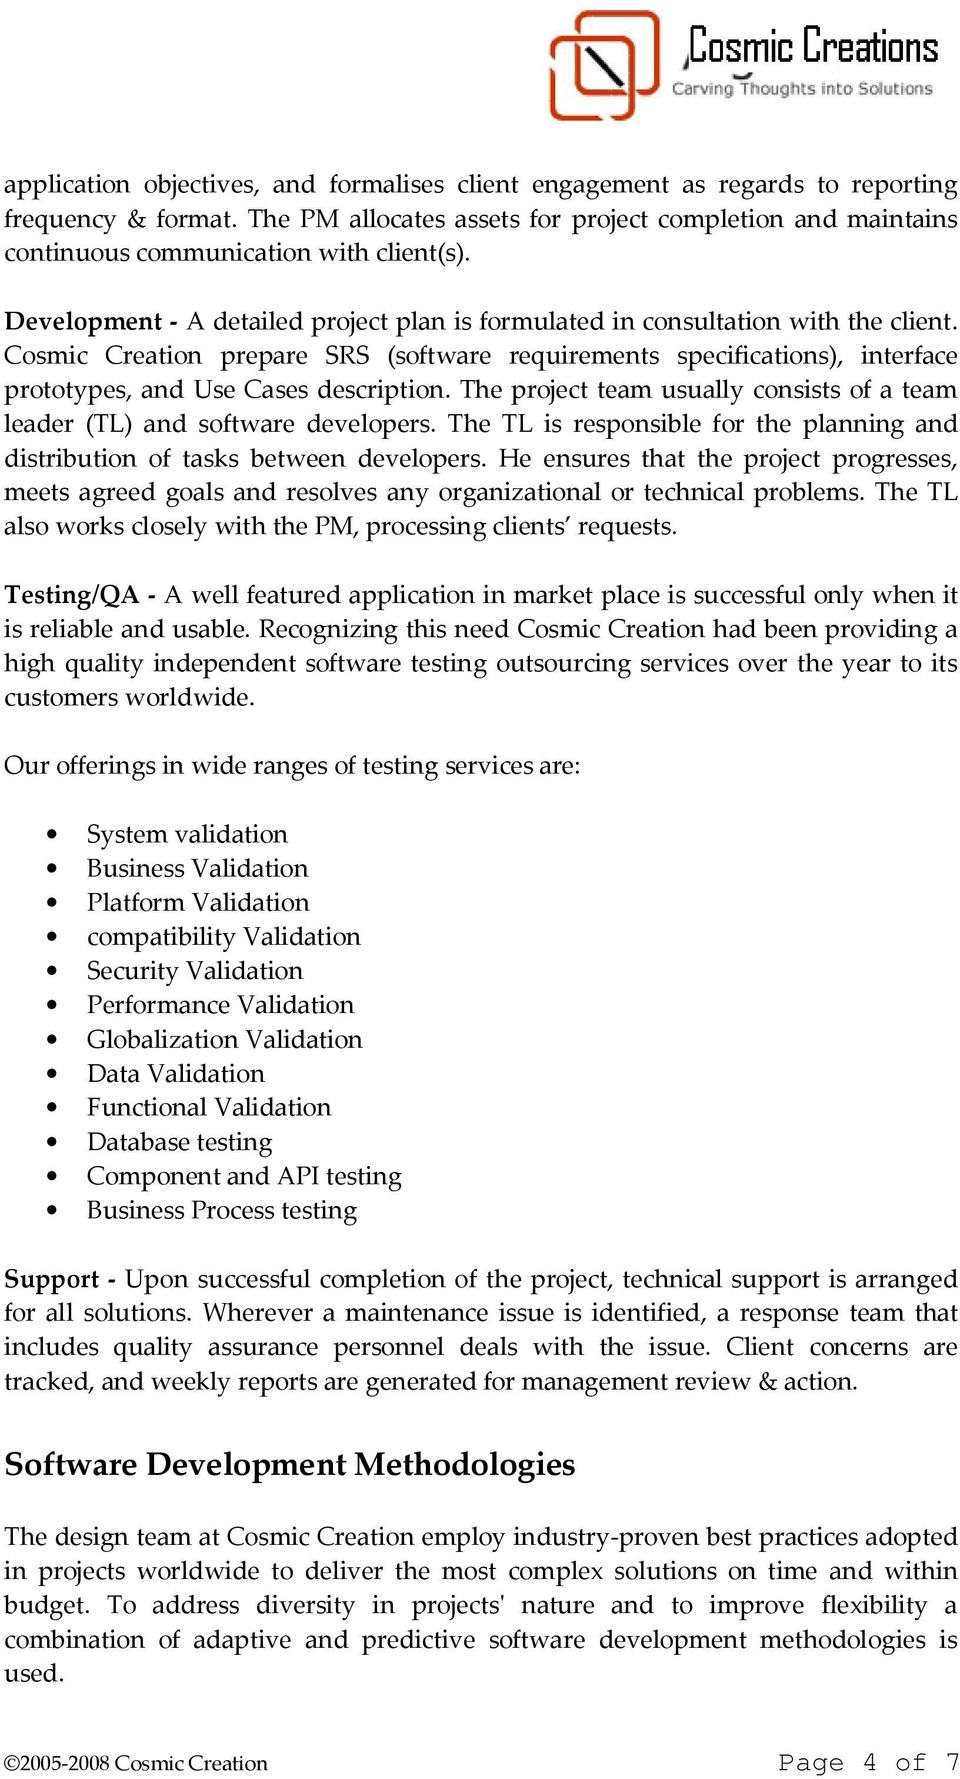 Executive Summary  Within IT Services, Cosmic Creation